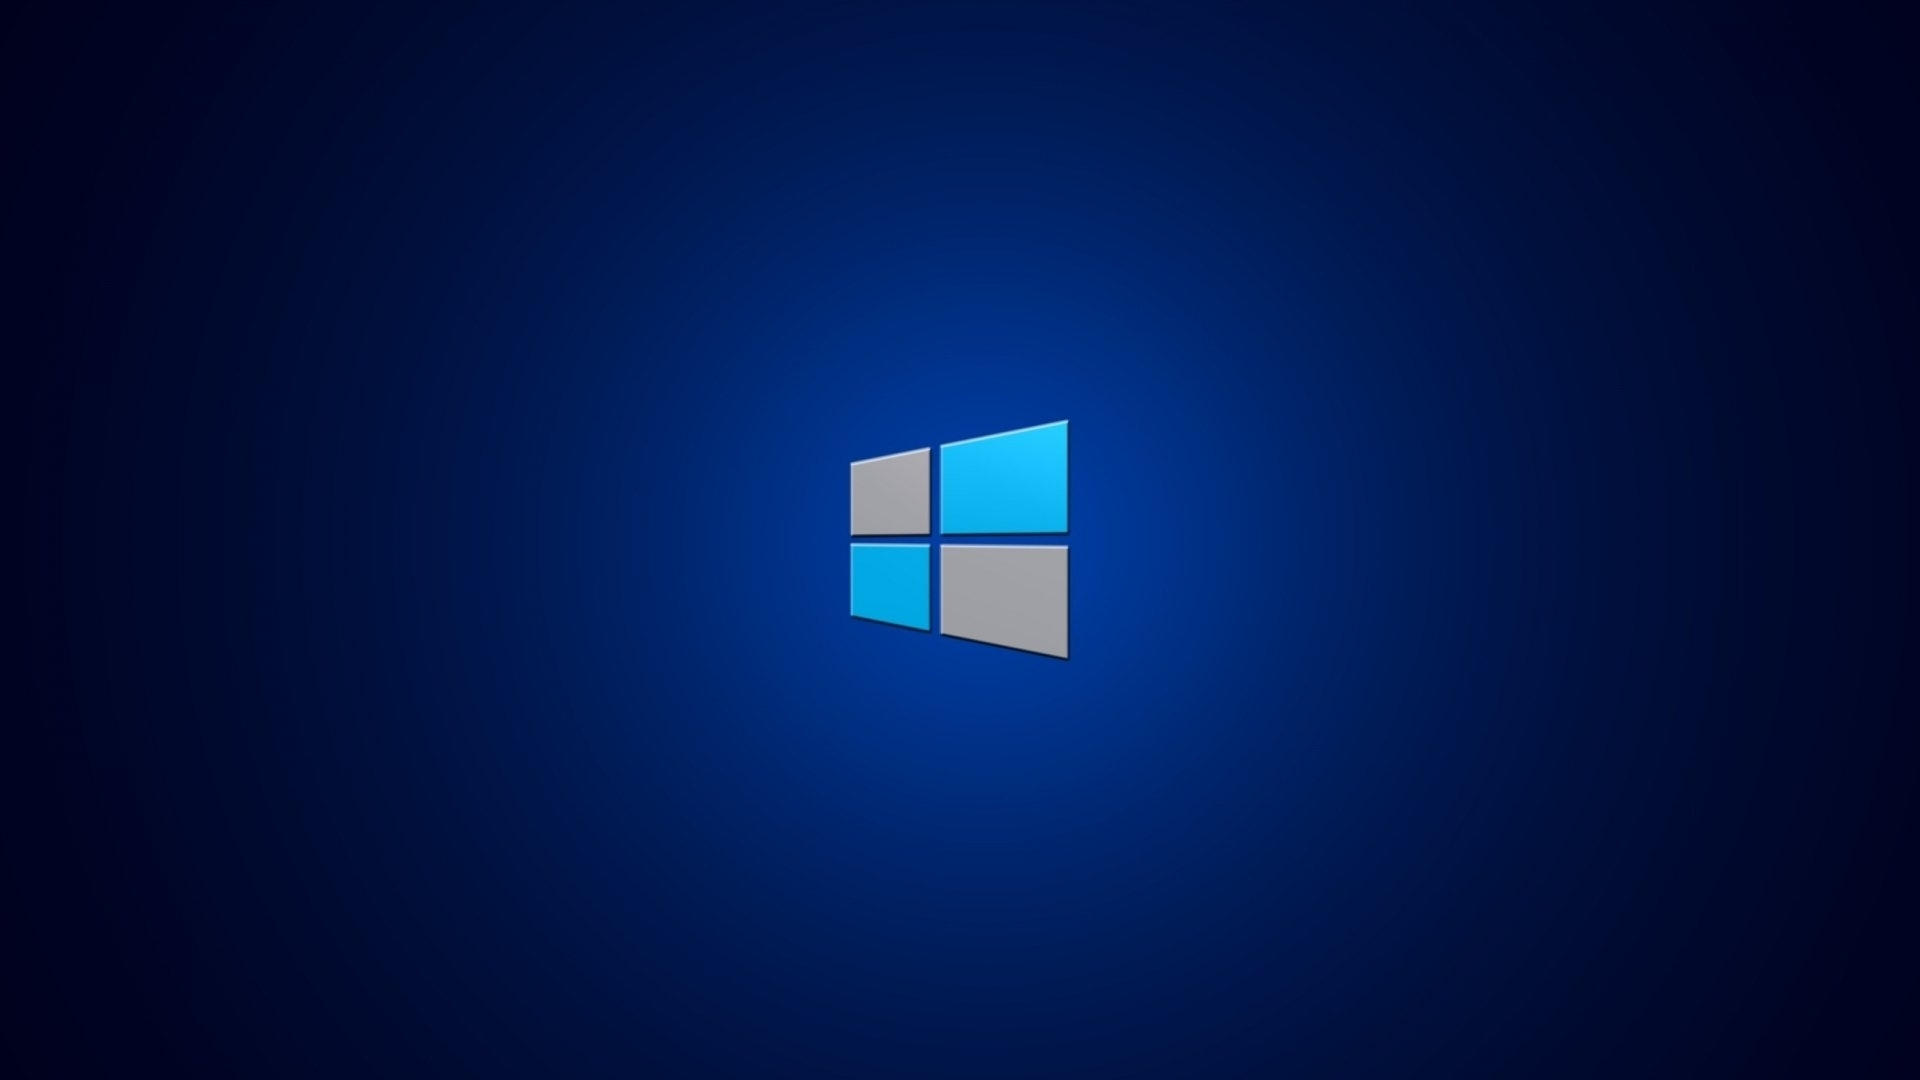 165 windows 8 hd wallpapers | background images - wallpaper abyss